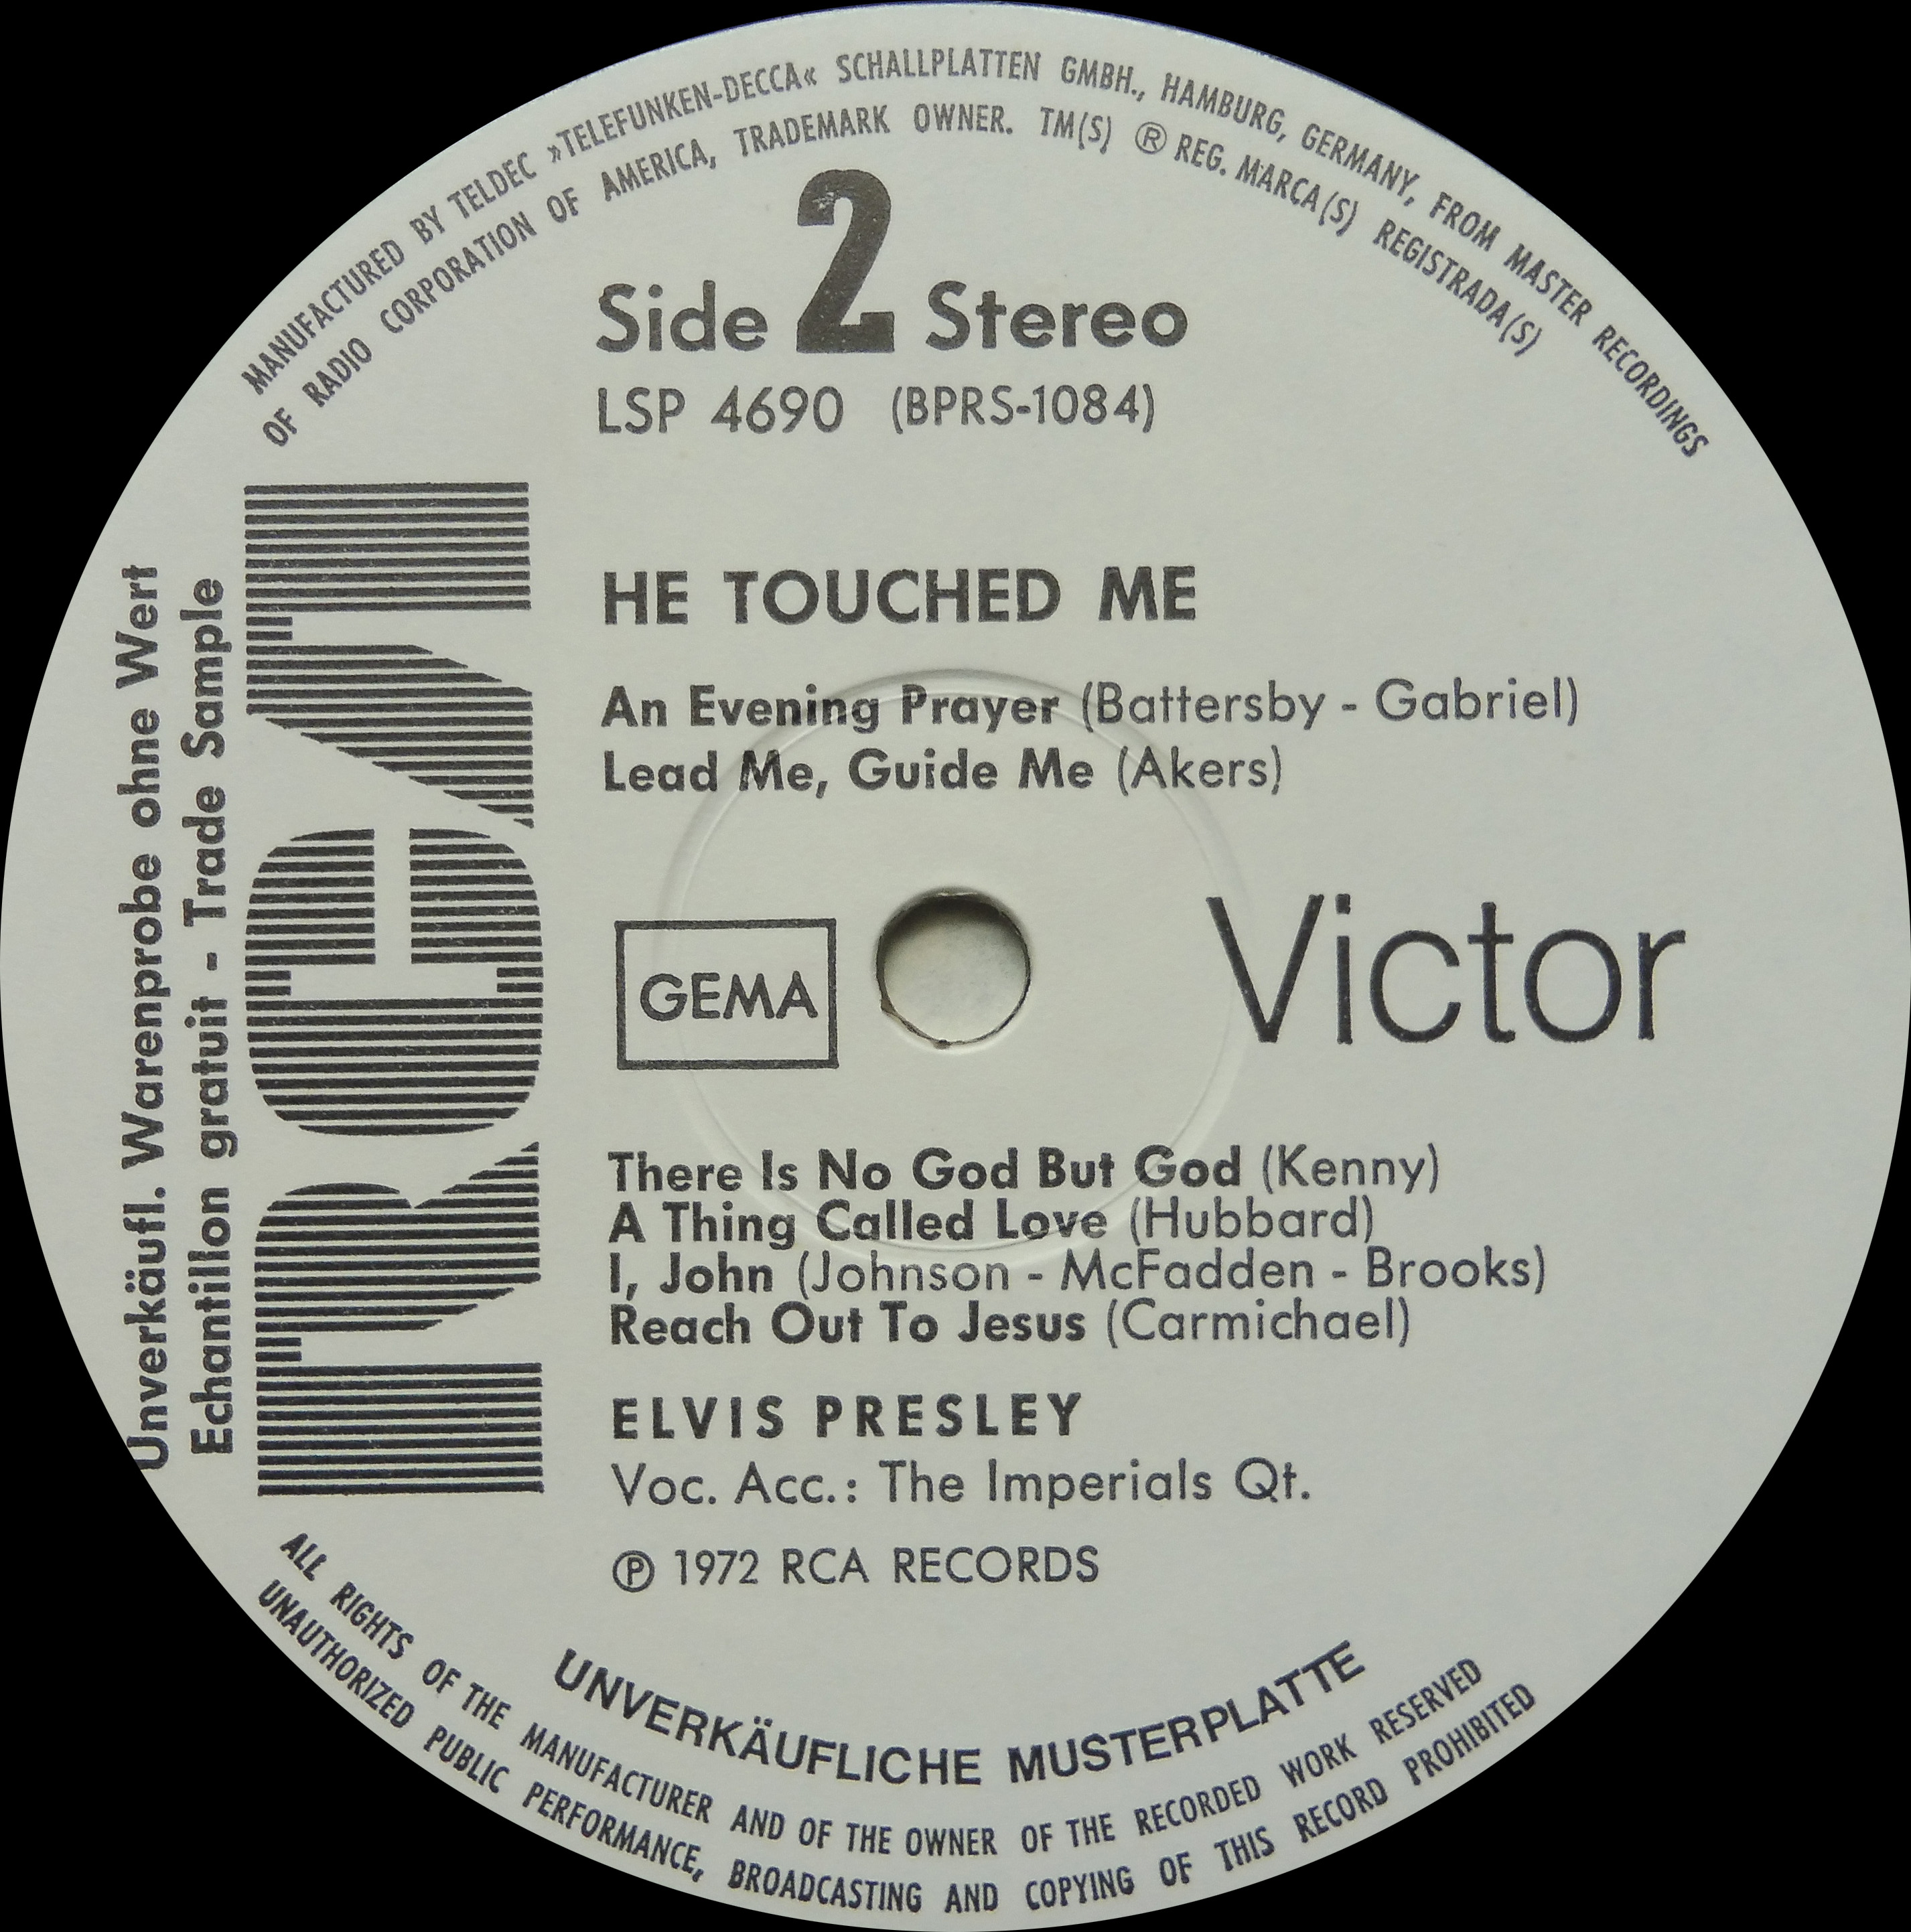 HE TOUCHED ME Hetouchedme72promo_si70jwk